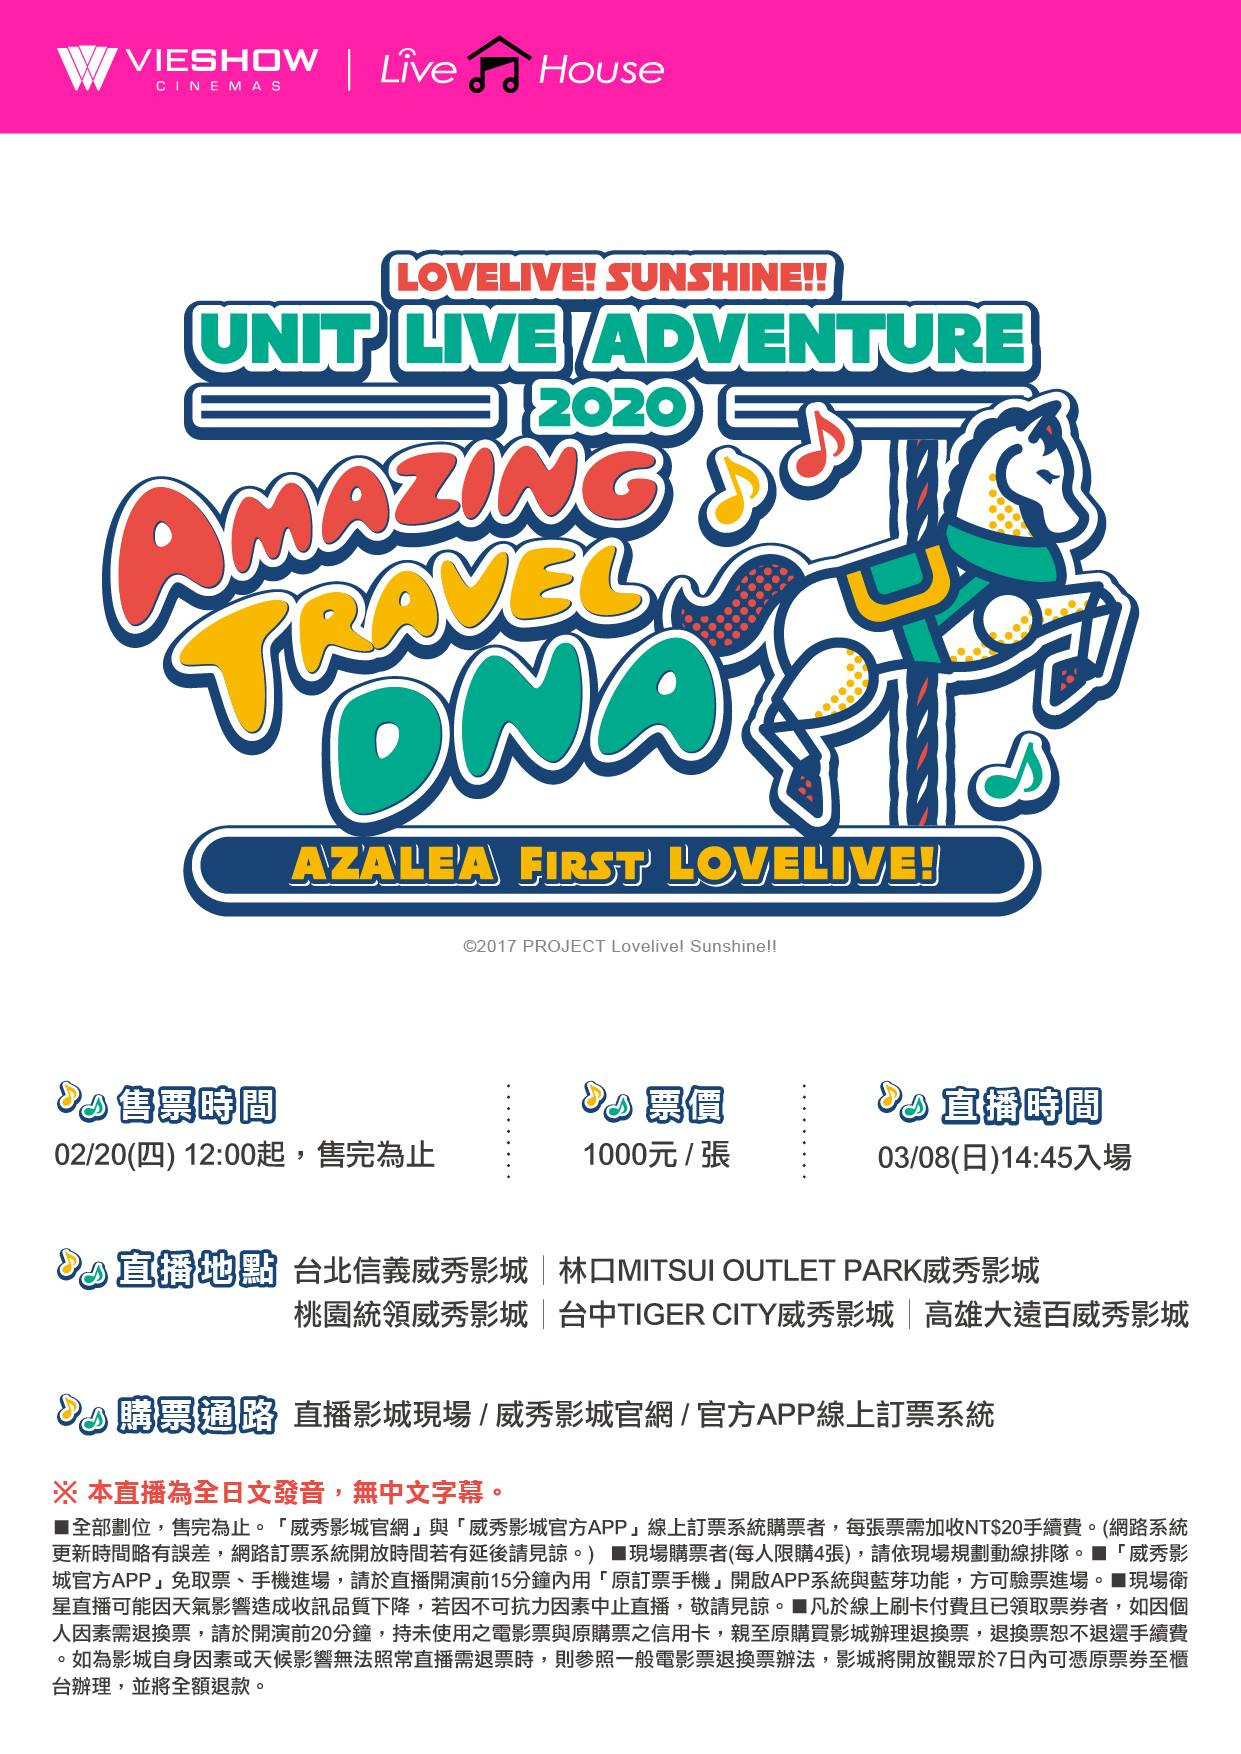 9 (LIVE)AZALEA FIRST LOVELIVE!~AMAZING TRAVEL DNA~現場直播